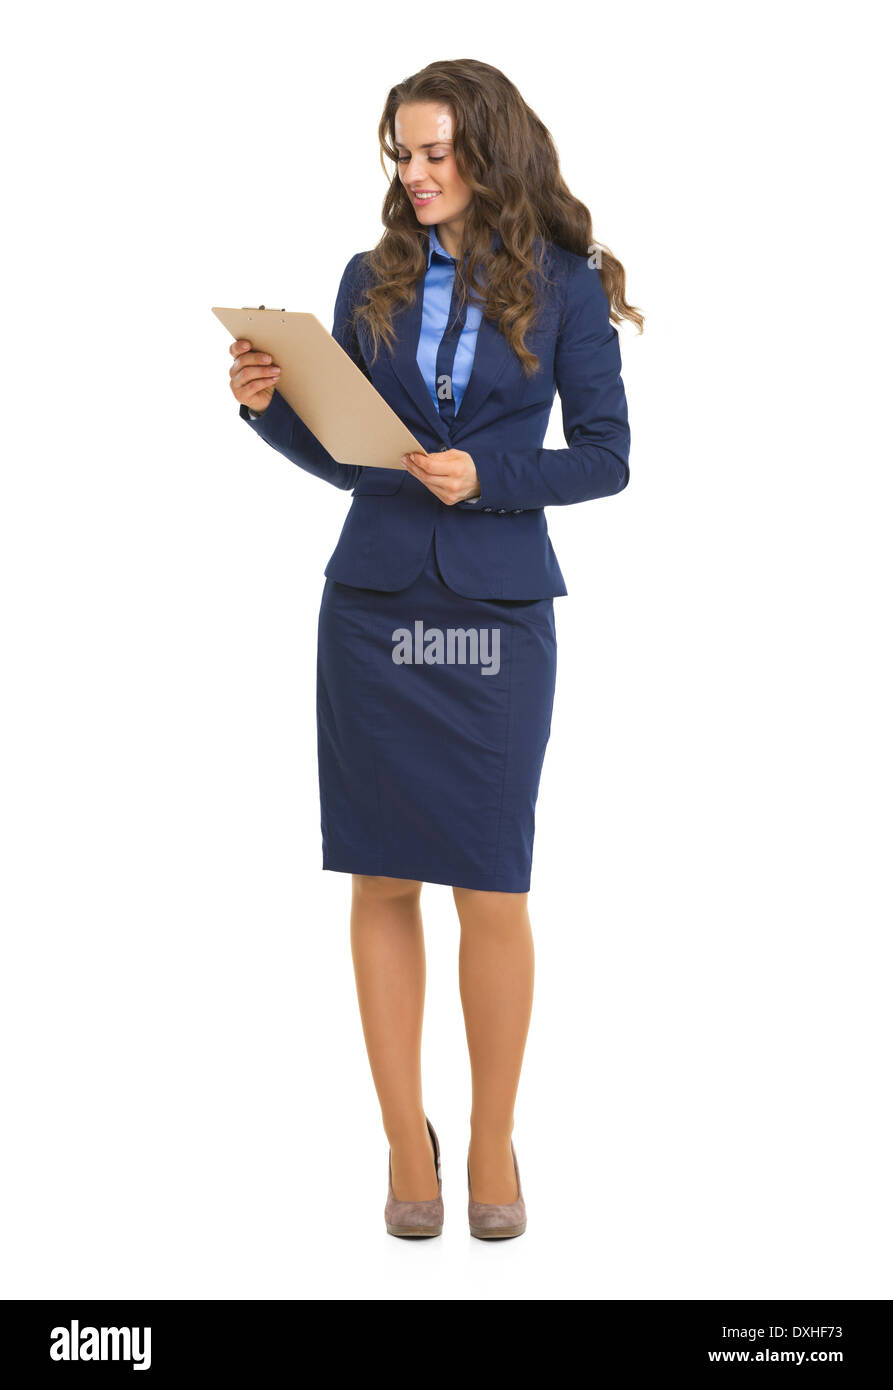 Full length portrait of business woman with clipboard - Stock Image